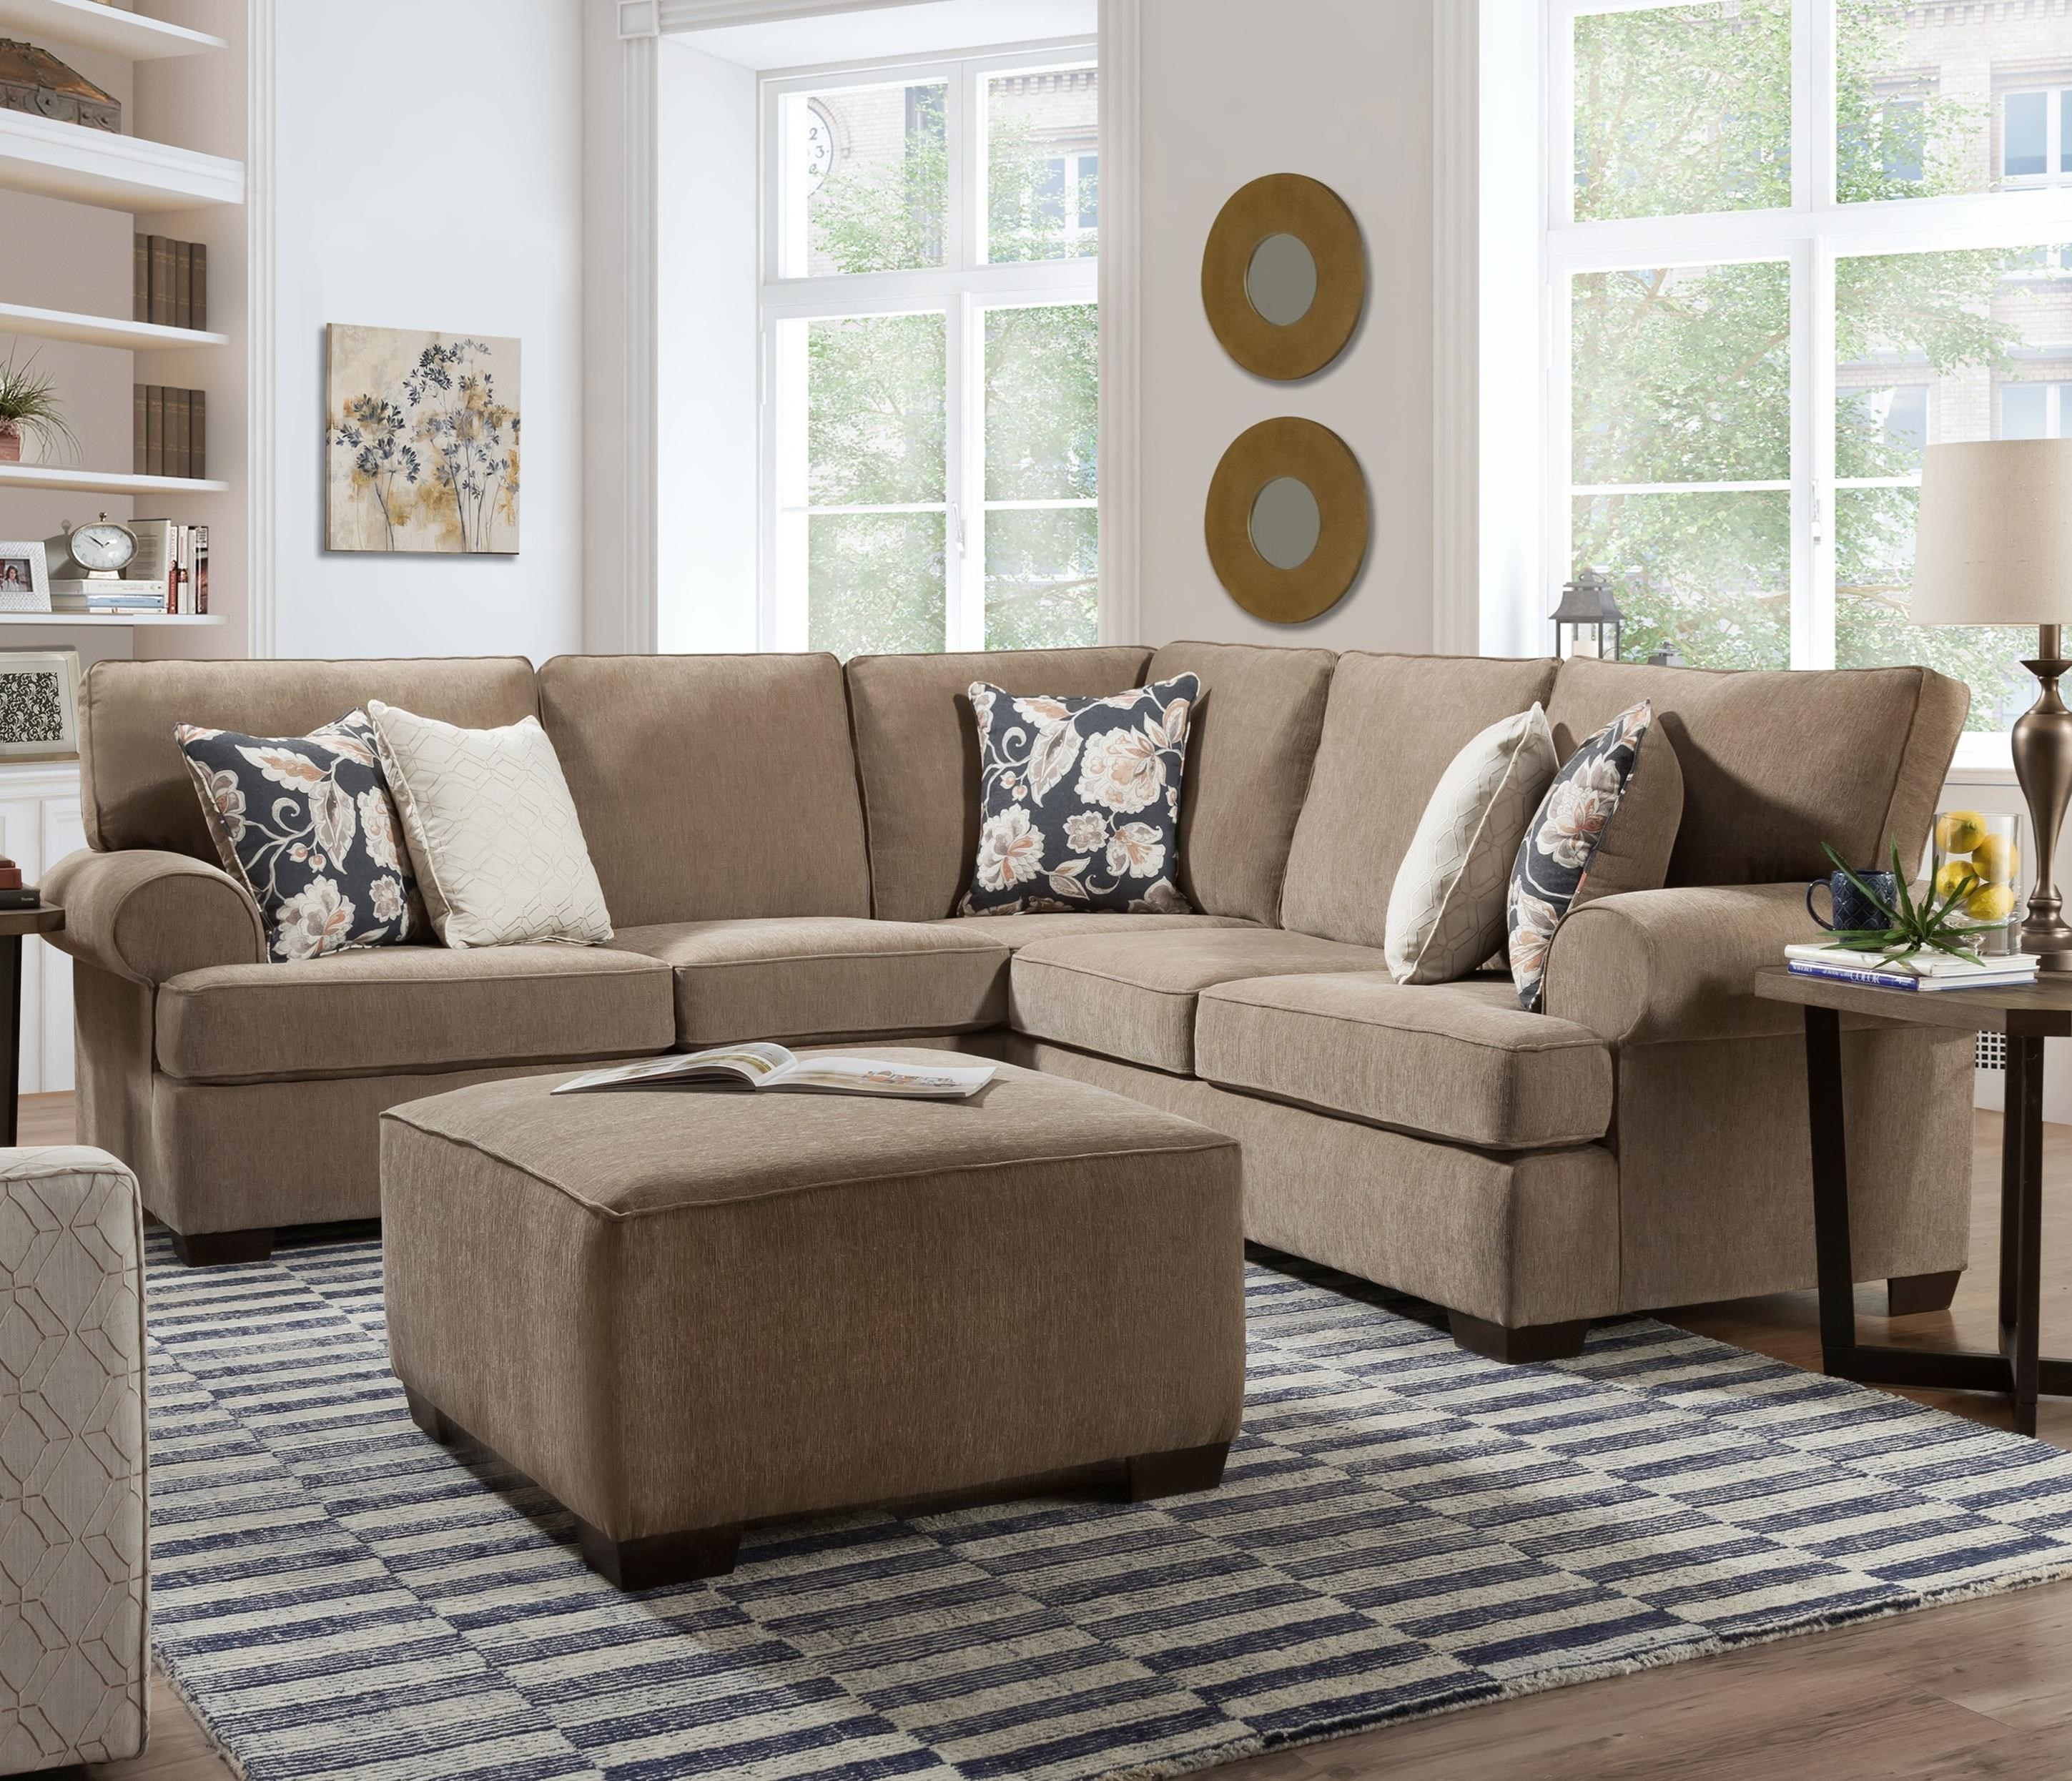 3010 Sectional by Peak Living at Prime Brothers Furniture